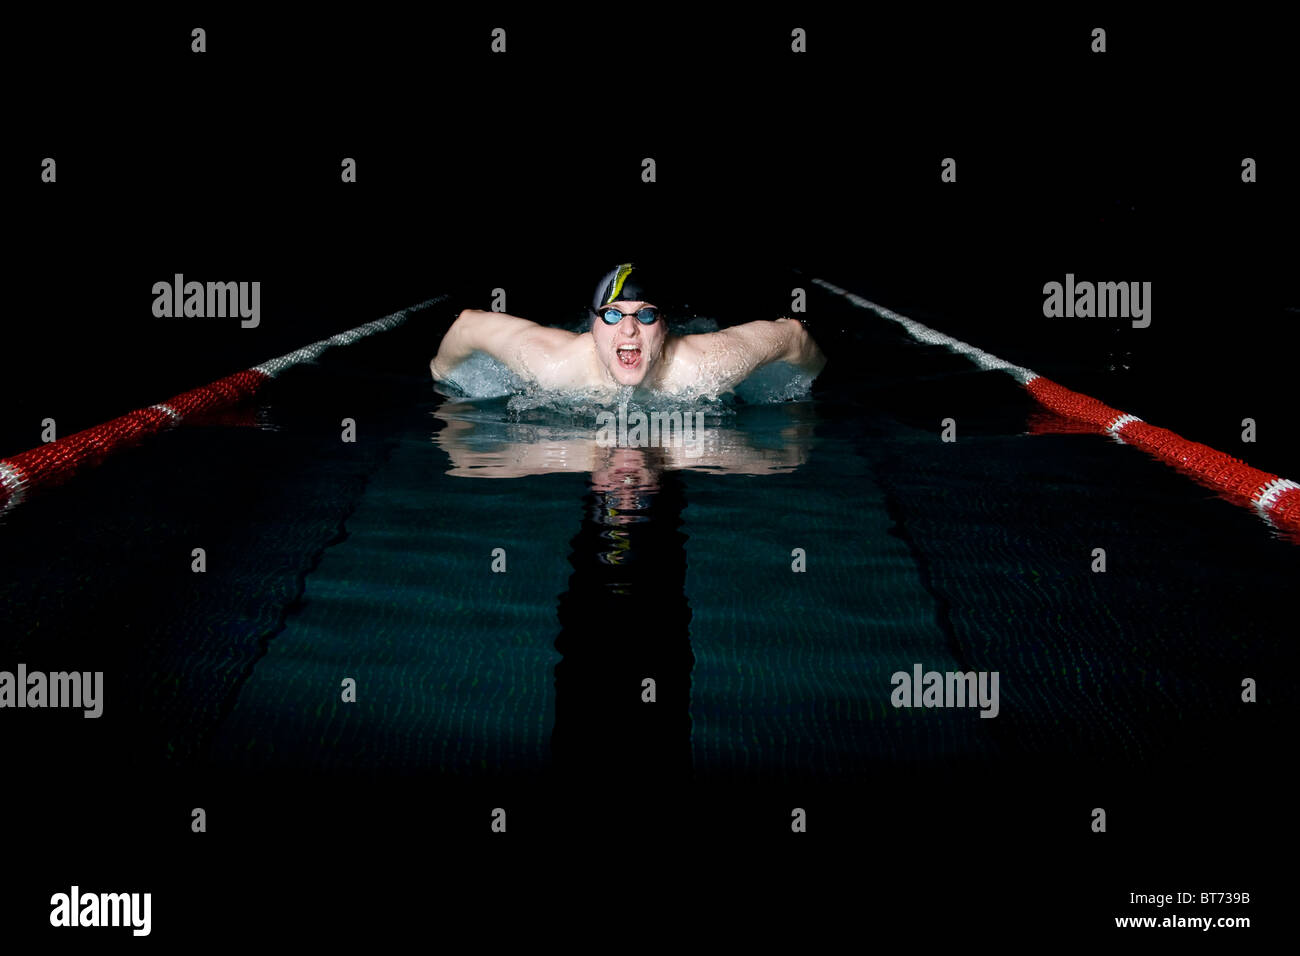 swimming cap stockfotos swimming cap bilder alamy. Black Bedroom Furniture Sets. Home Design Ideas